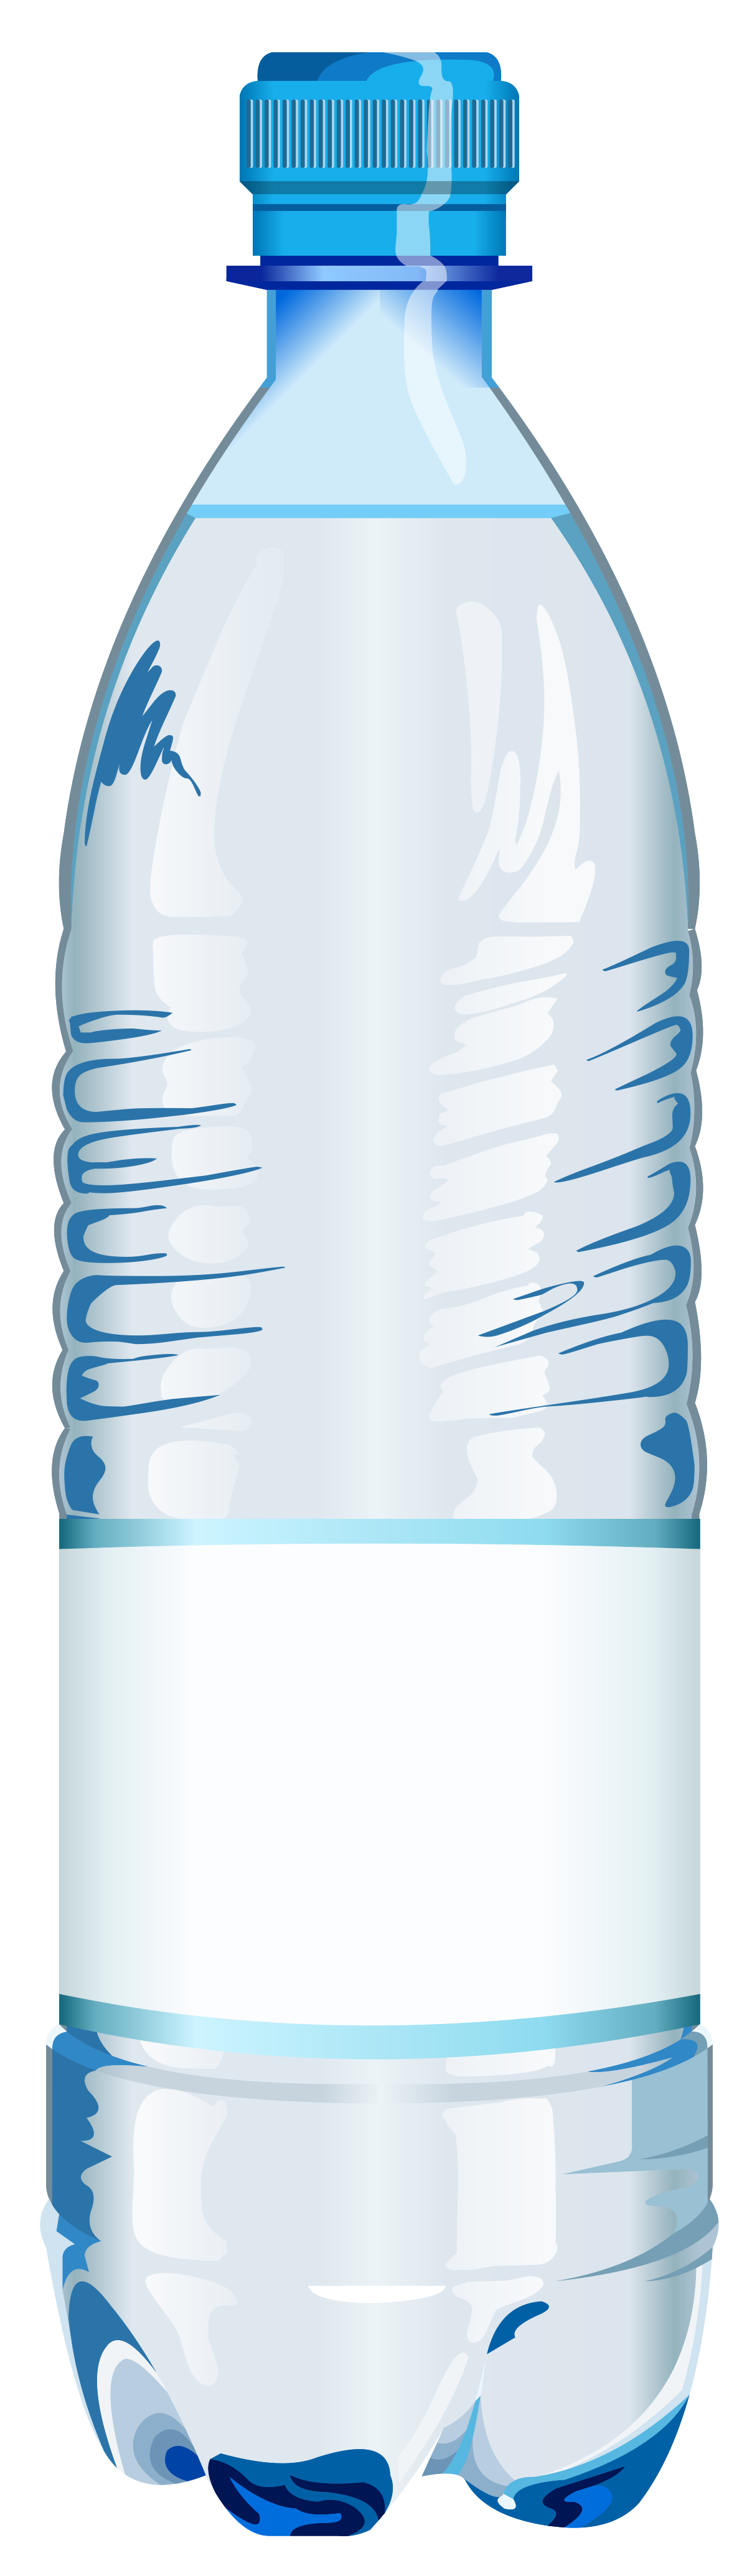 water bottle, bottle water clipart png collection #18602